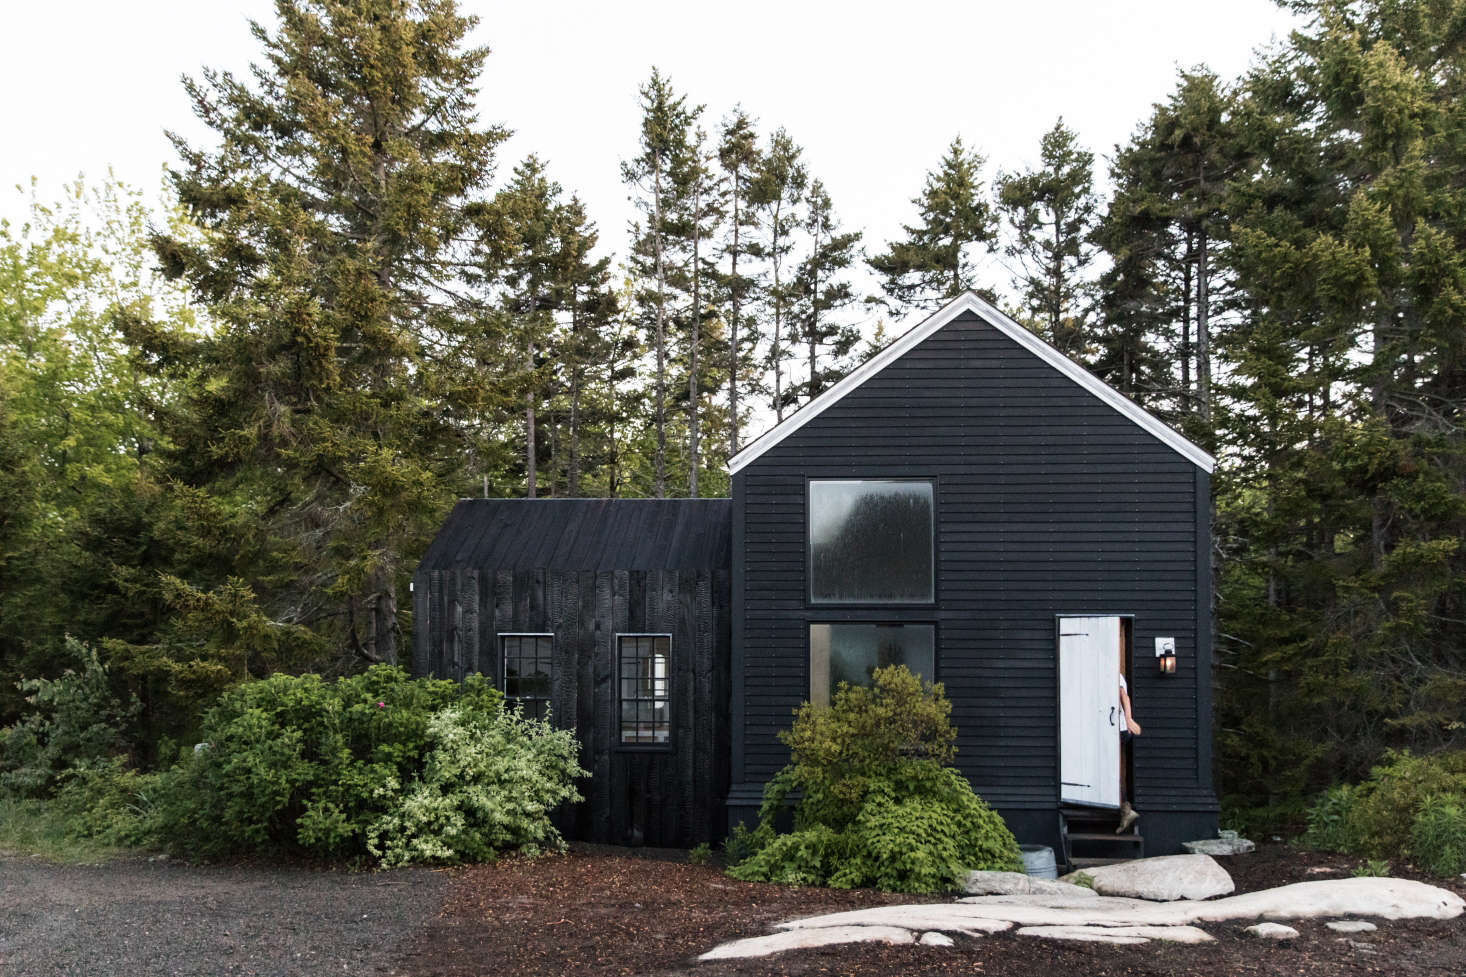 Maine has no shortage of pine trees. The Soot House, pictured here, uses mulch made from the area's fallen spruce trees. Photograph by Greta Rybus, from Curb Appeal: A Classic New England Color Palette on Spruce Head in Maine.